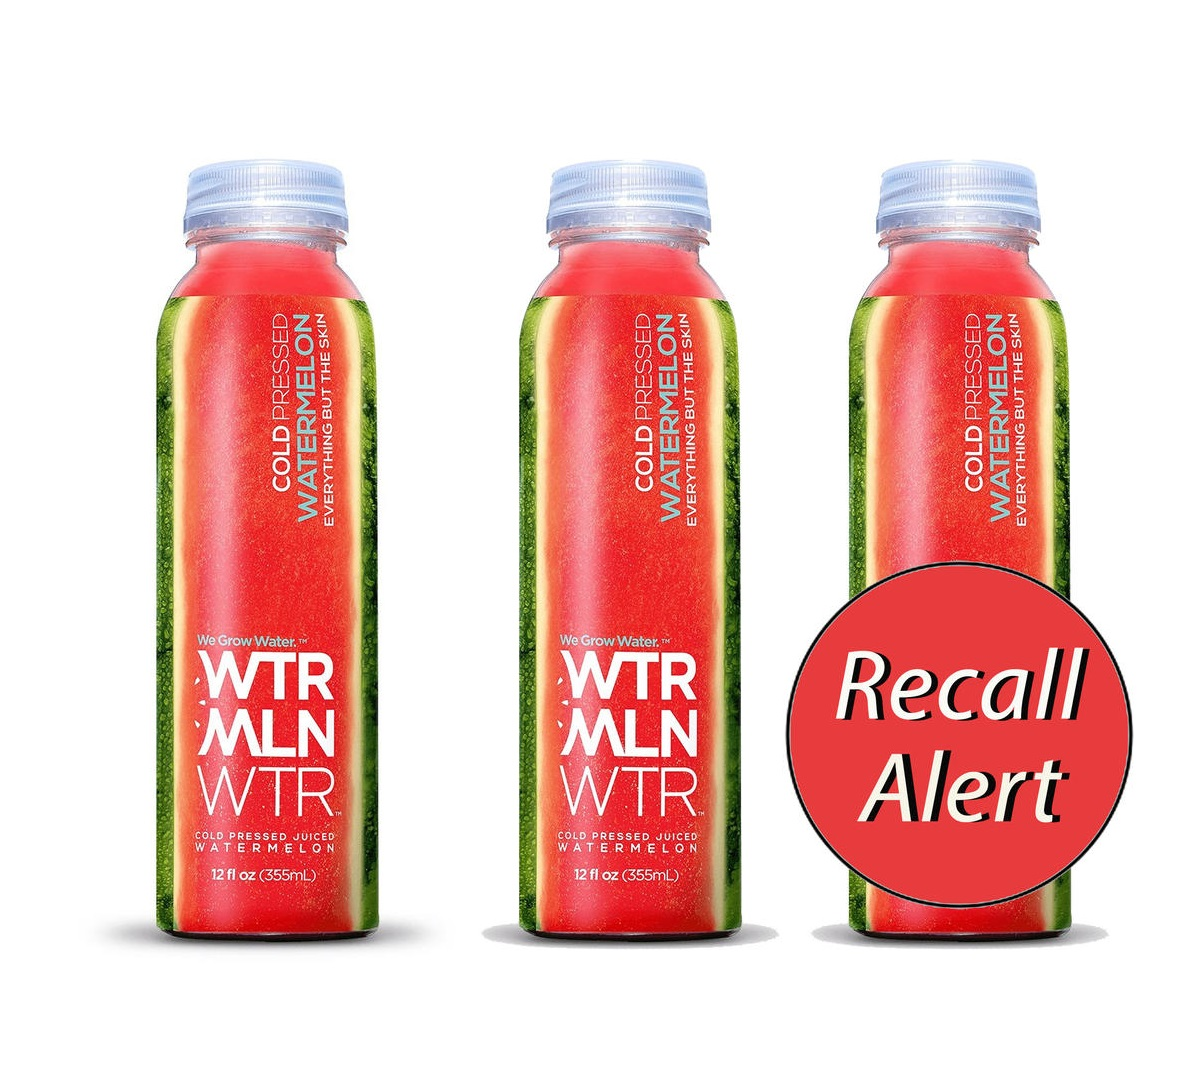 Watermelon Juice Recalled From Walmart, Publix, Winn-Dixie and More